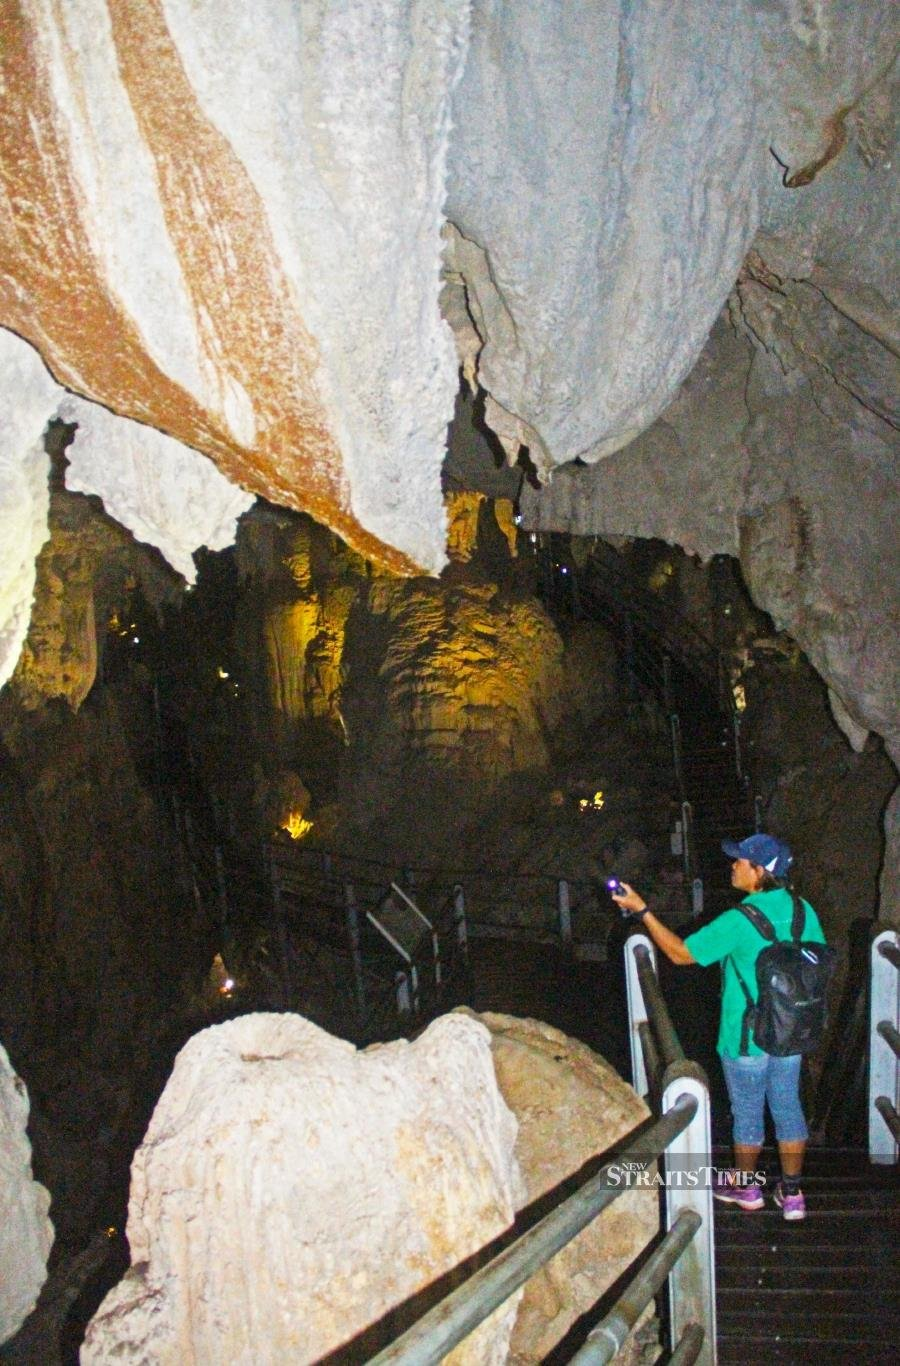 Despite being named after one of Sarawak's highest peaks, it's the subterranean landforms that attract visitors to this 52,866ha national park in remote Borneo. The list of superlatives is as big as the caves in this Unesco World Heritage Site. There are four main caves — Deer, Lang, Clearwater and Wind. Deer Cave is the world's largest passage while the Sarawak Chamber is the world's largest chamber. Millions of bats exiting the caves in the evening is a spectacular sight. It's also possible to climb to the peaks of Gunung Api and Gunung Mulu, but this is best undertaken accompanied by experienced guides.